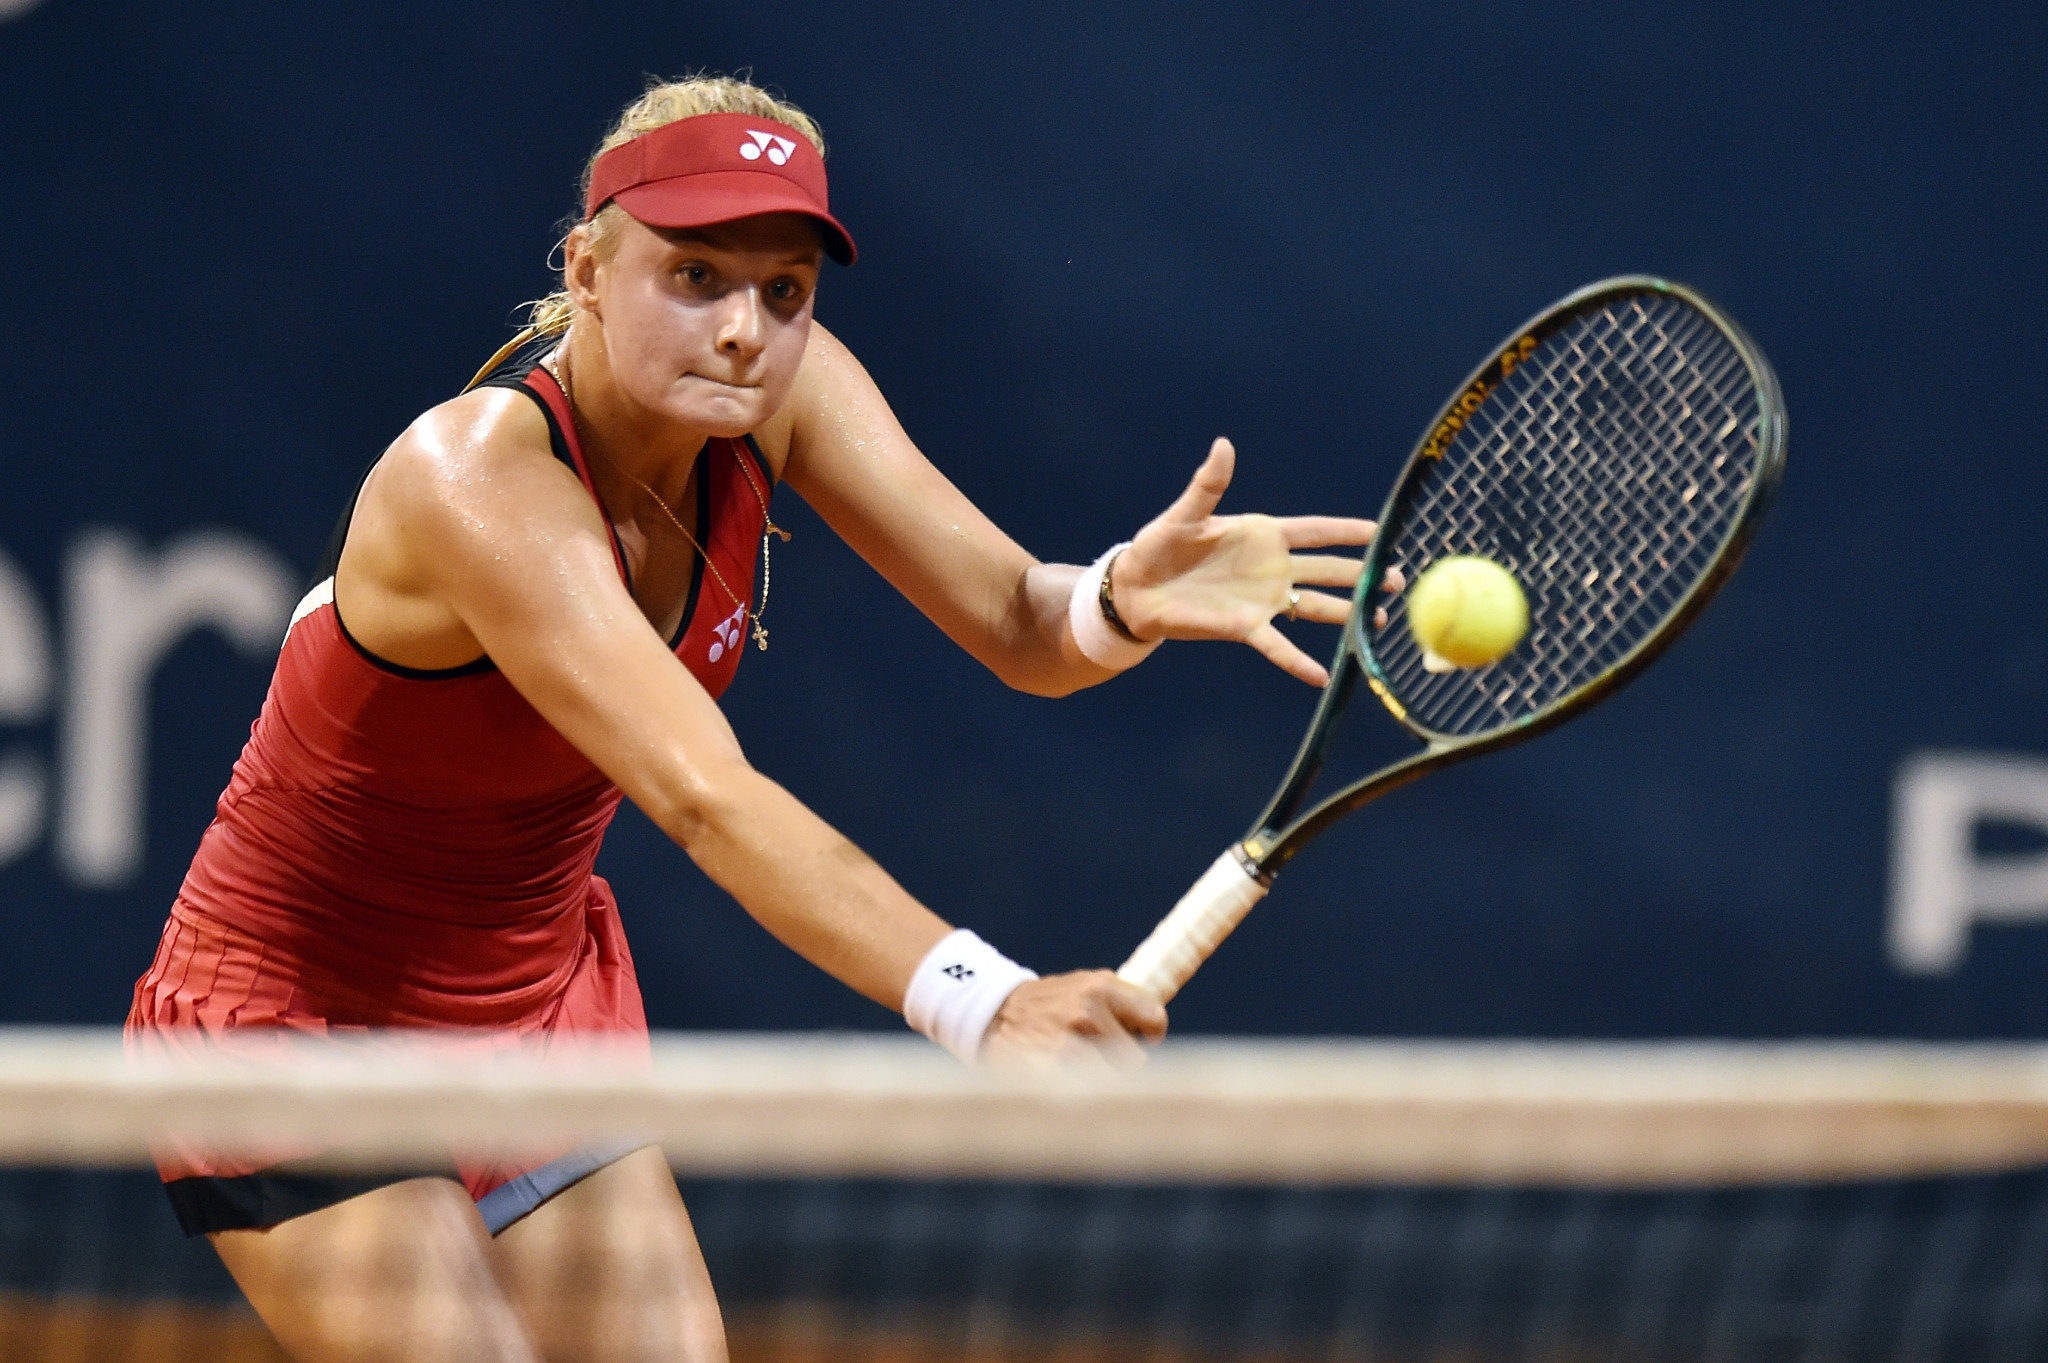 Yastremska's appeal against provisional doping ban rejected by CAS again